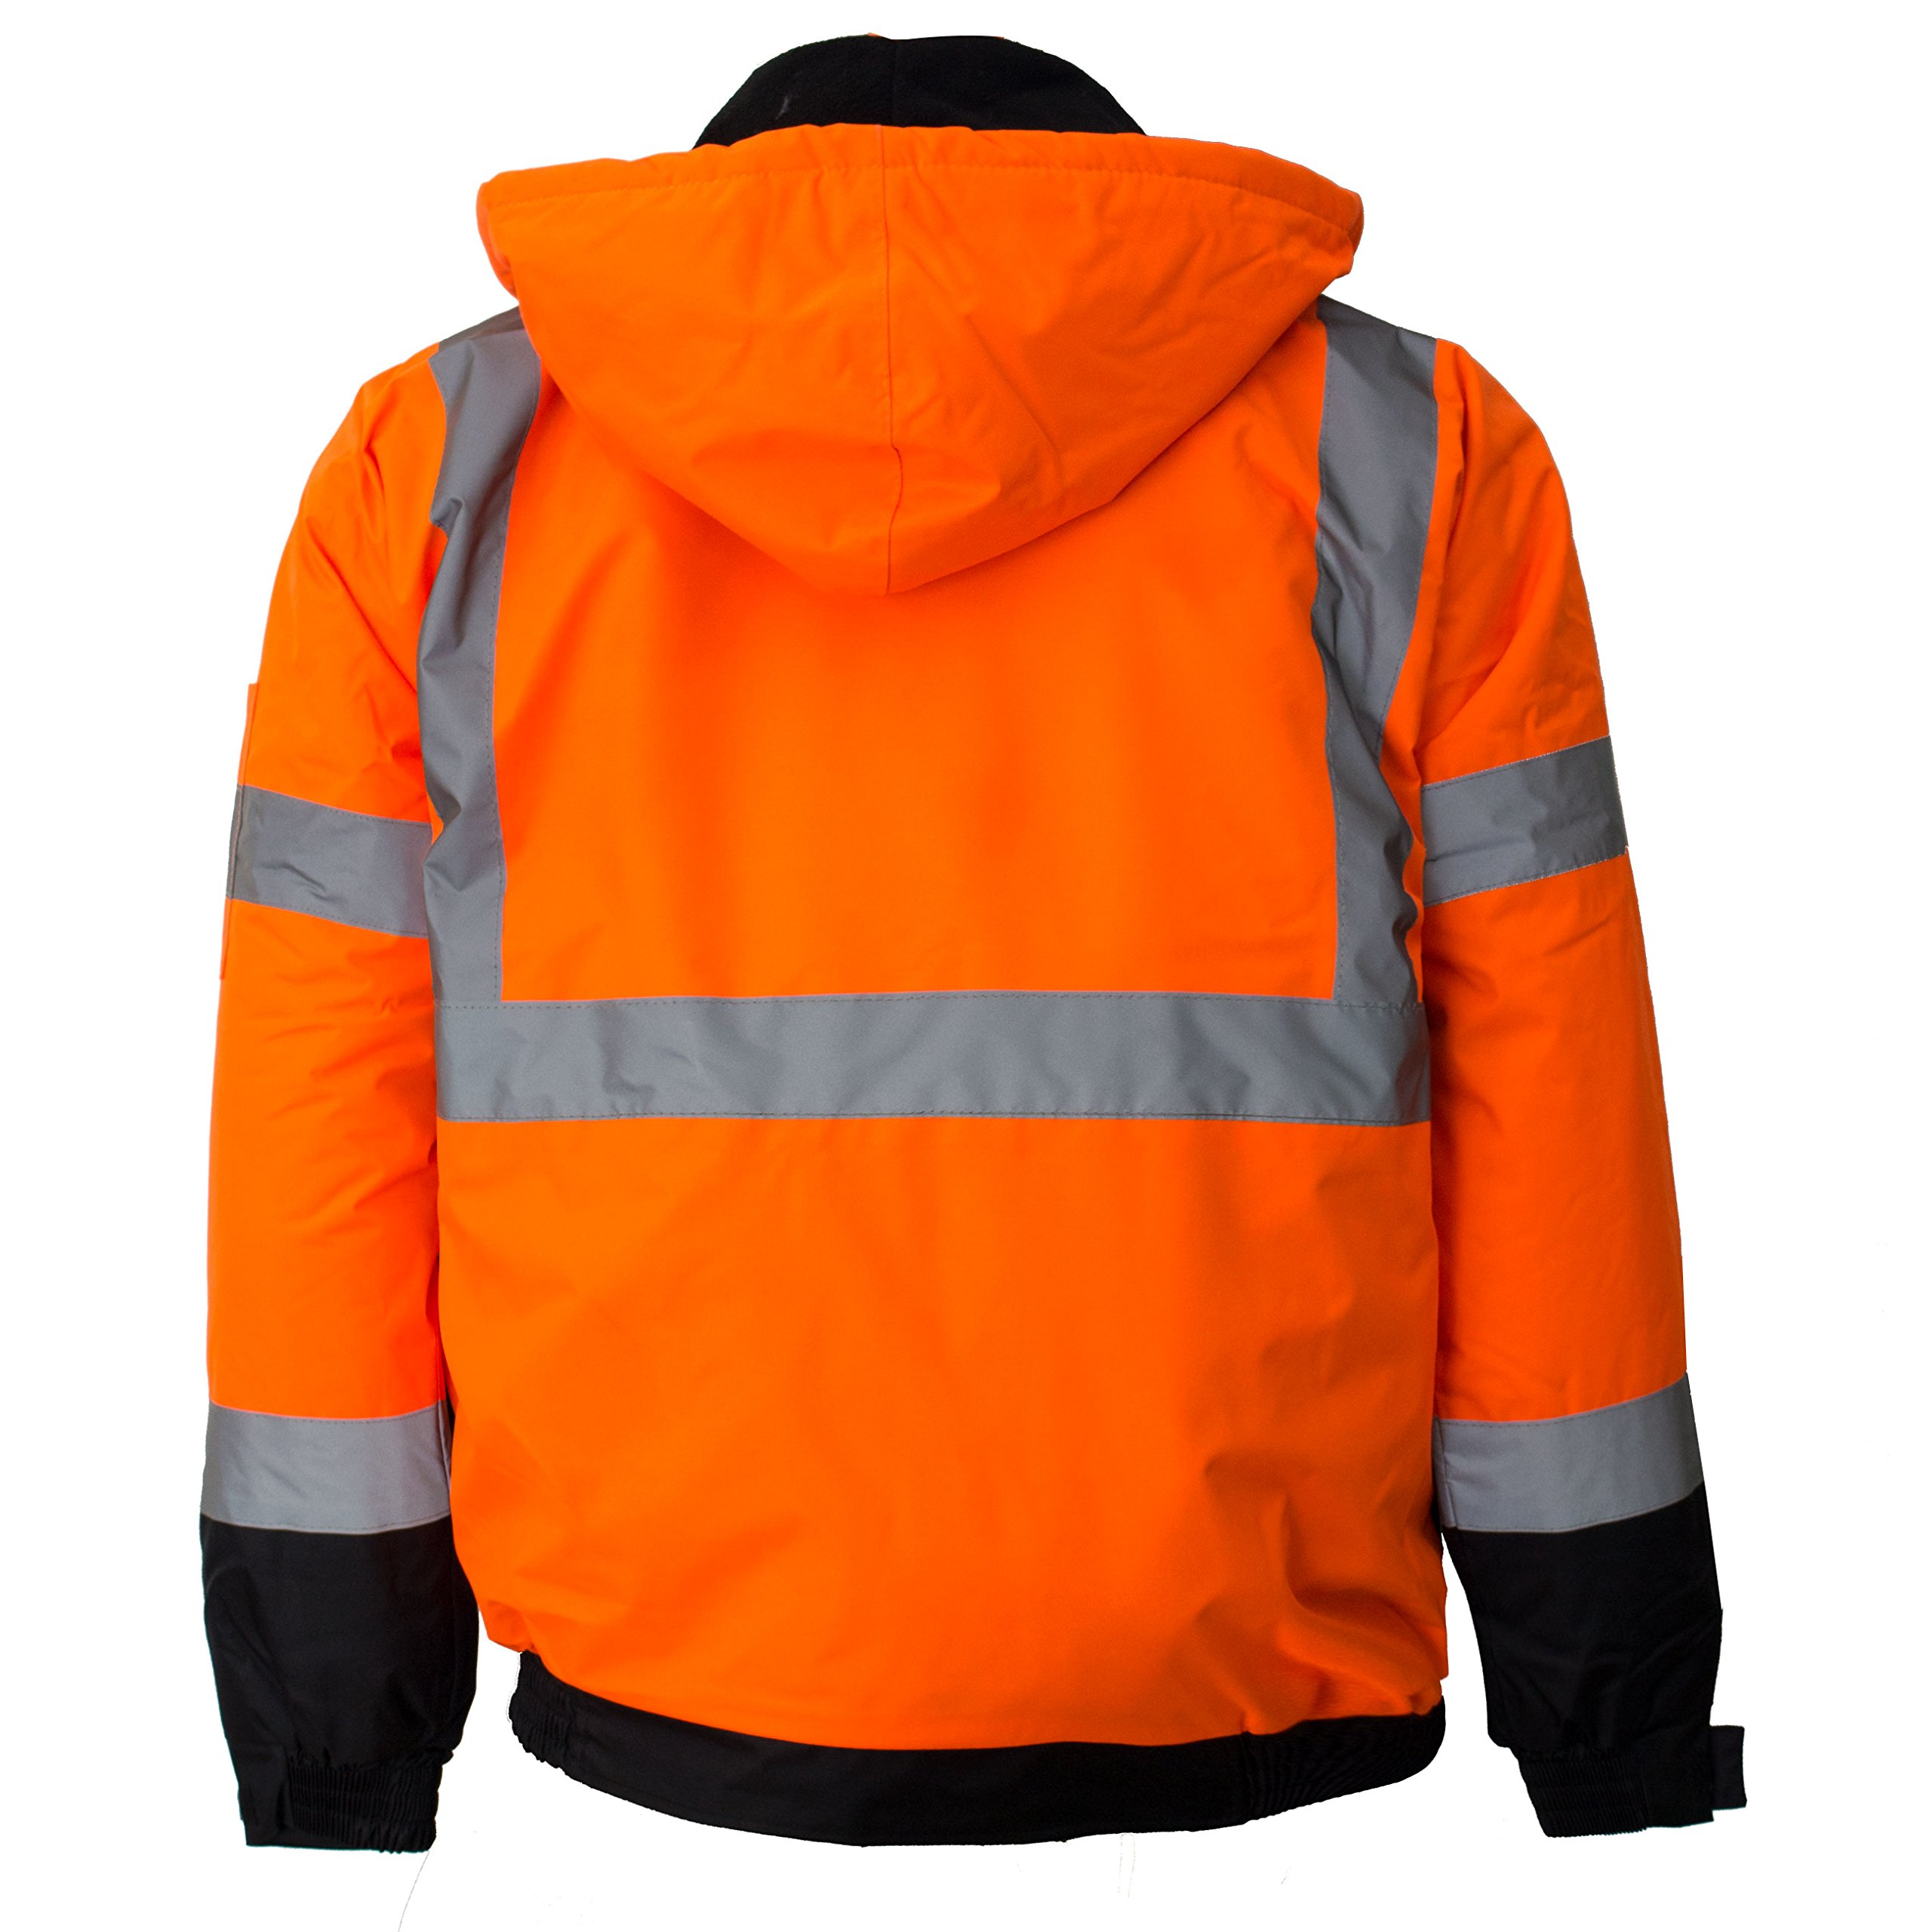 New York Hi-Viz Workwear WJ9011-L Men's ANSI Class 3 High Visibility Bomber Safety Jacket, Waterproof (Large, Orange) by New York Hi-Viz Workwear (Image #4)